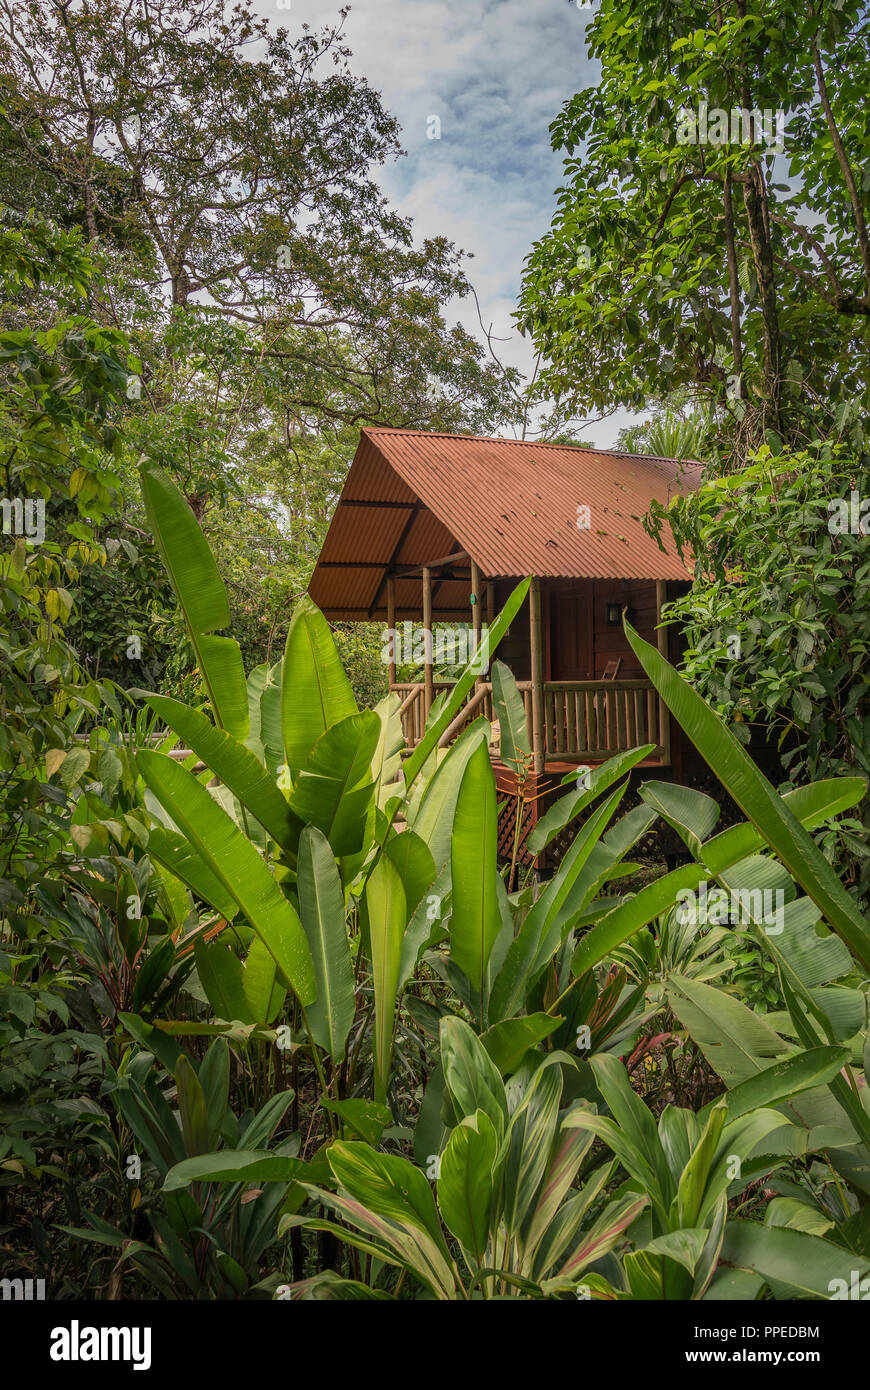 Aninga Evergreen Lodge, Guesthouse-Tortuguero National Park, Costa Rica - Stock Image